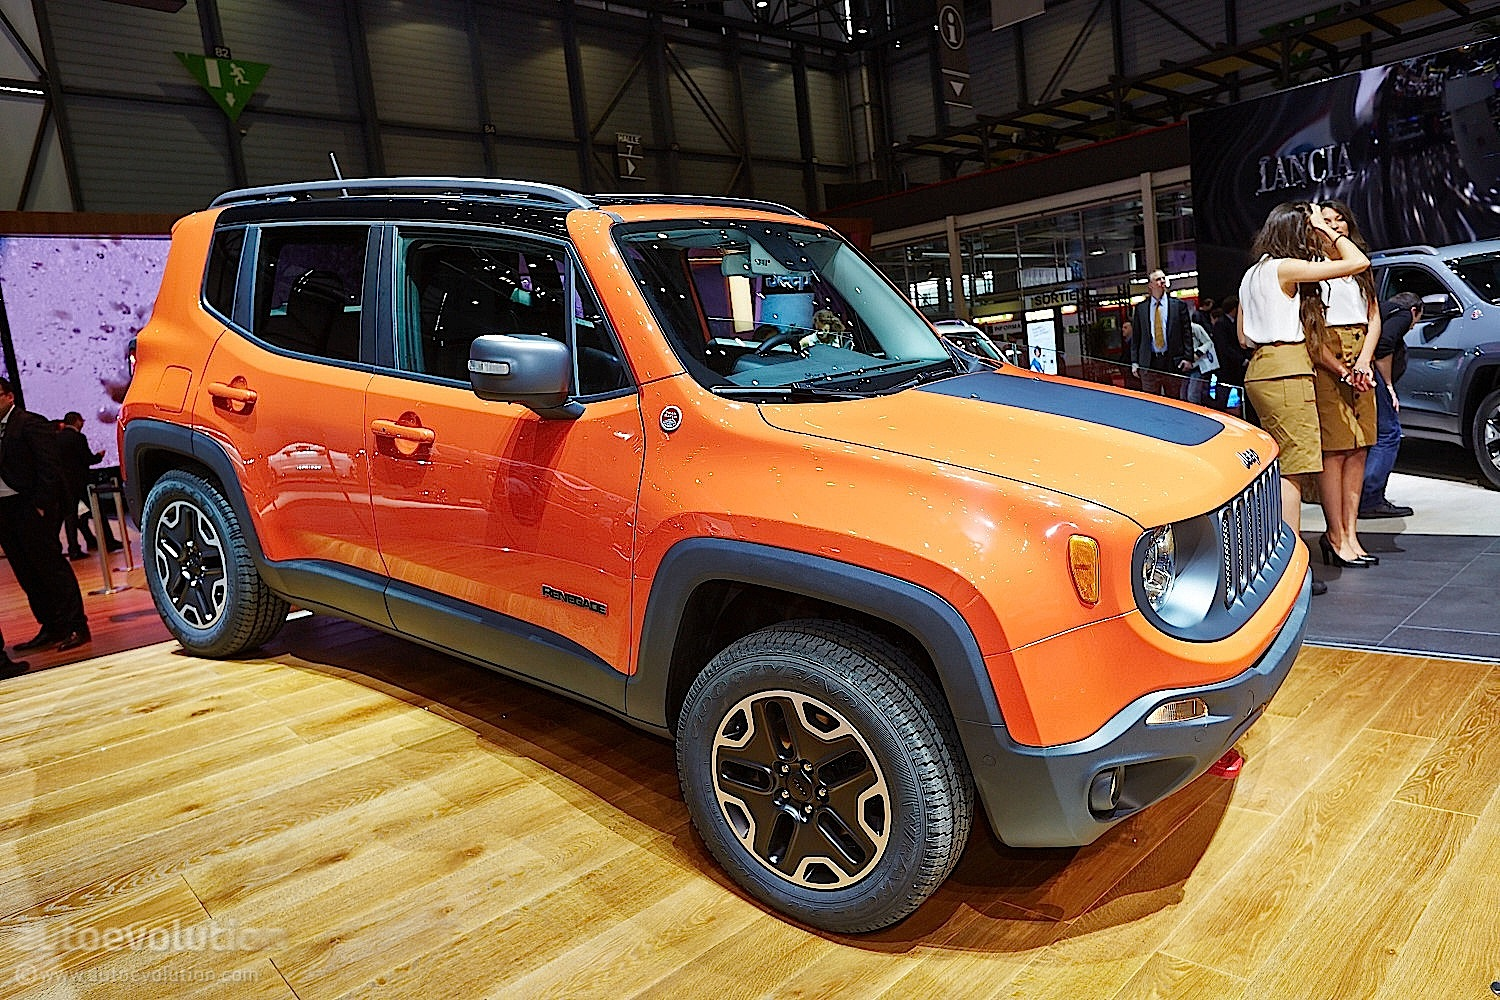 2015 Jeep Renegade Bows In Geneva Live Photos HD Wallpapers Download free images and photos [musssic.tk]